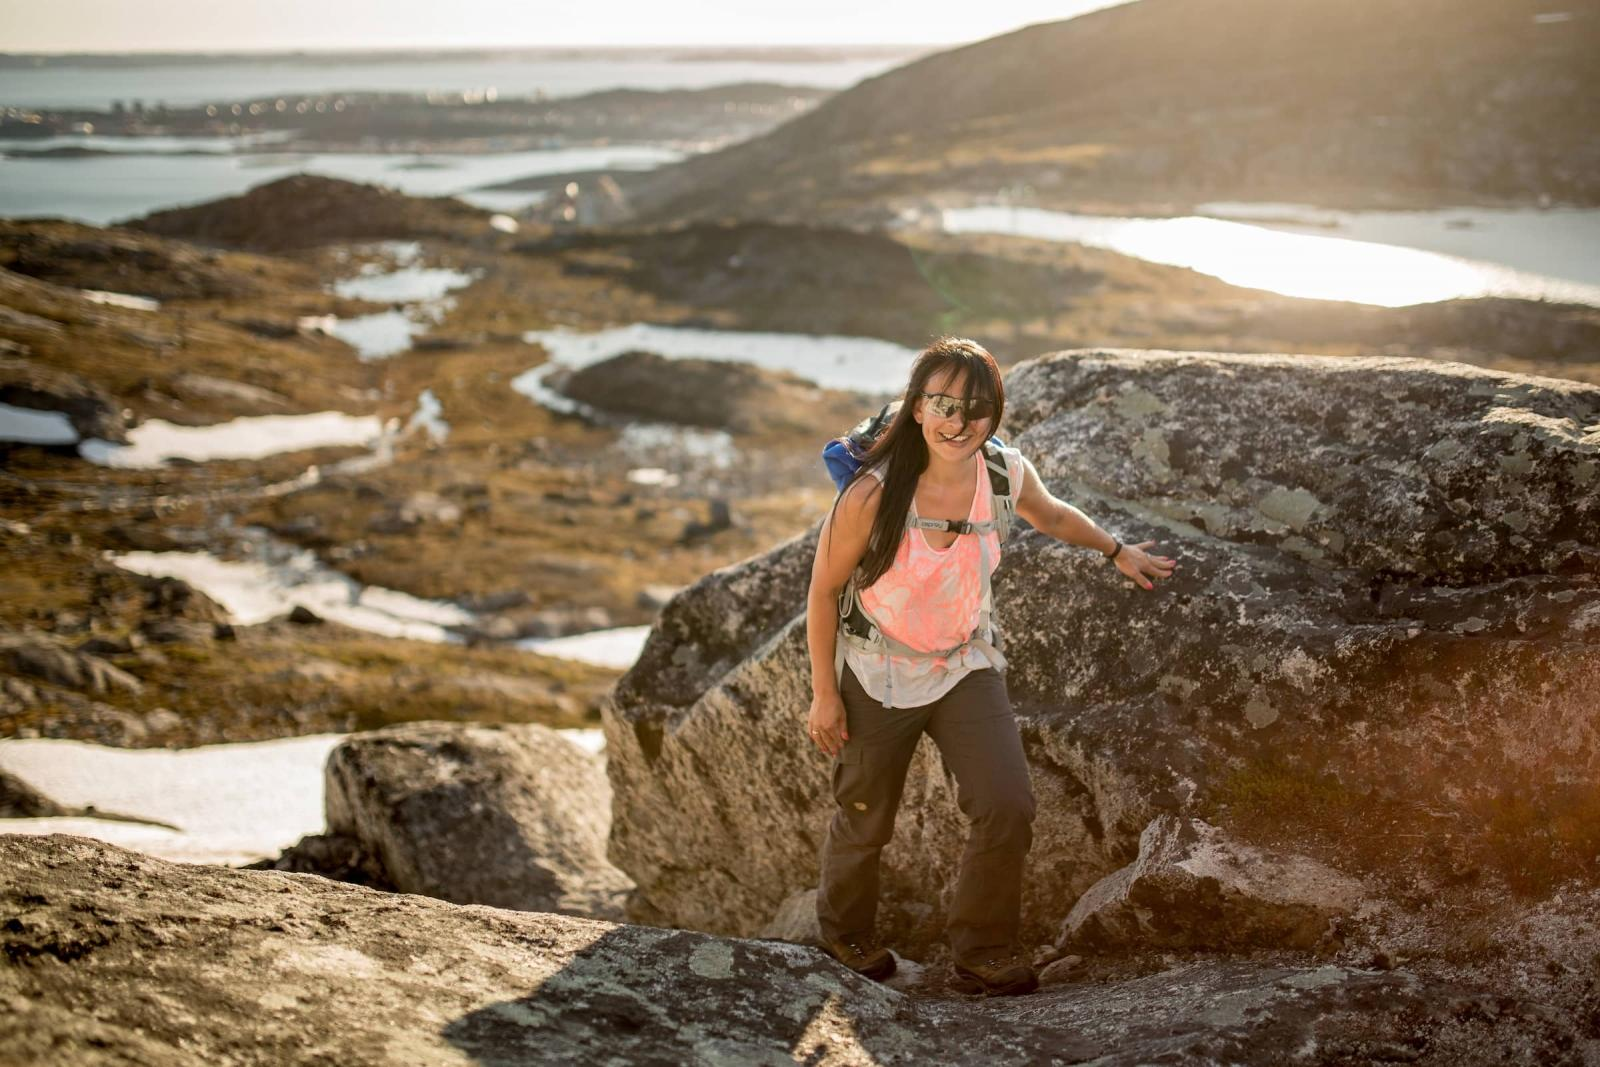 A hiker on the first part of the climb to the Ukkusissaq - Store Malene peak outside Nuuk in Greenland. By Mads Pihl